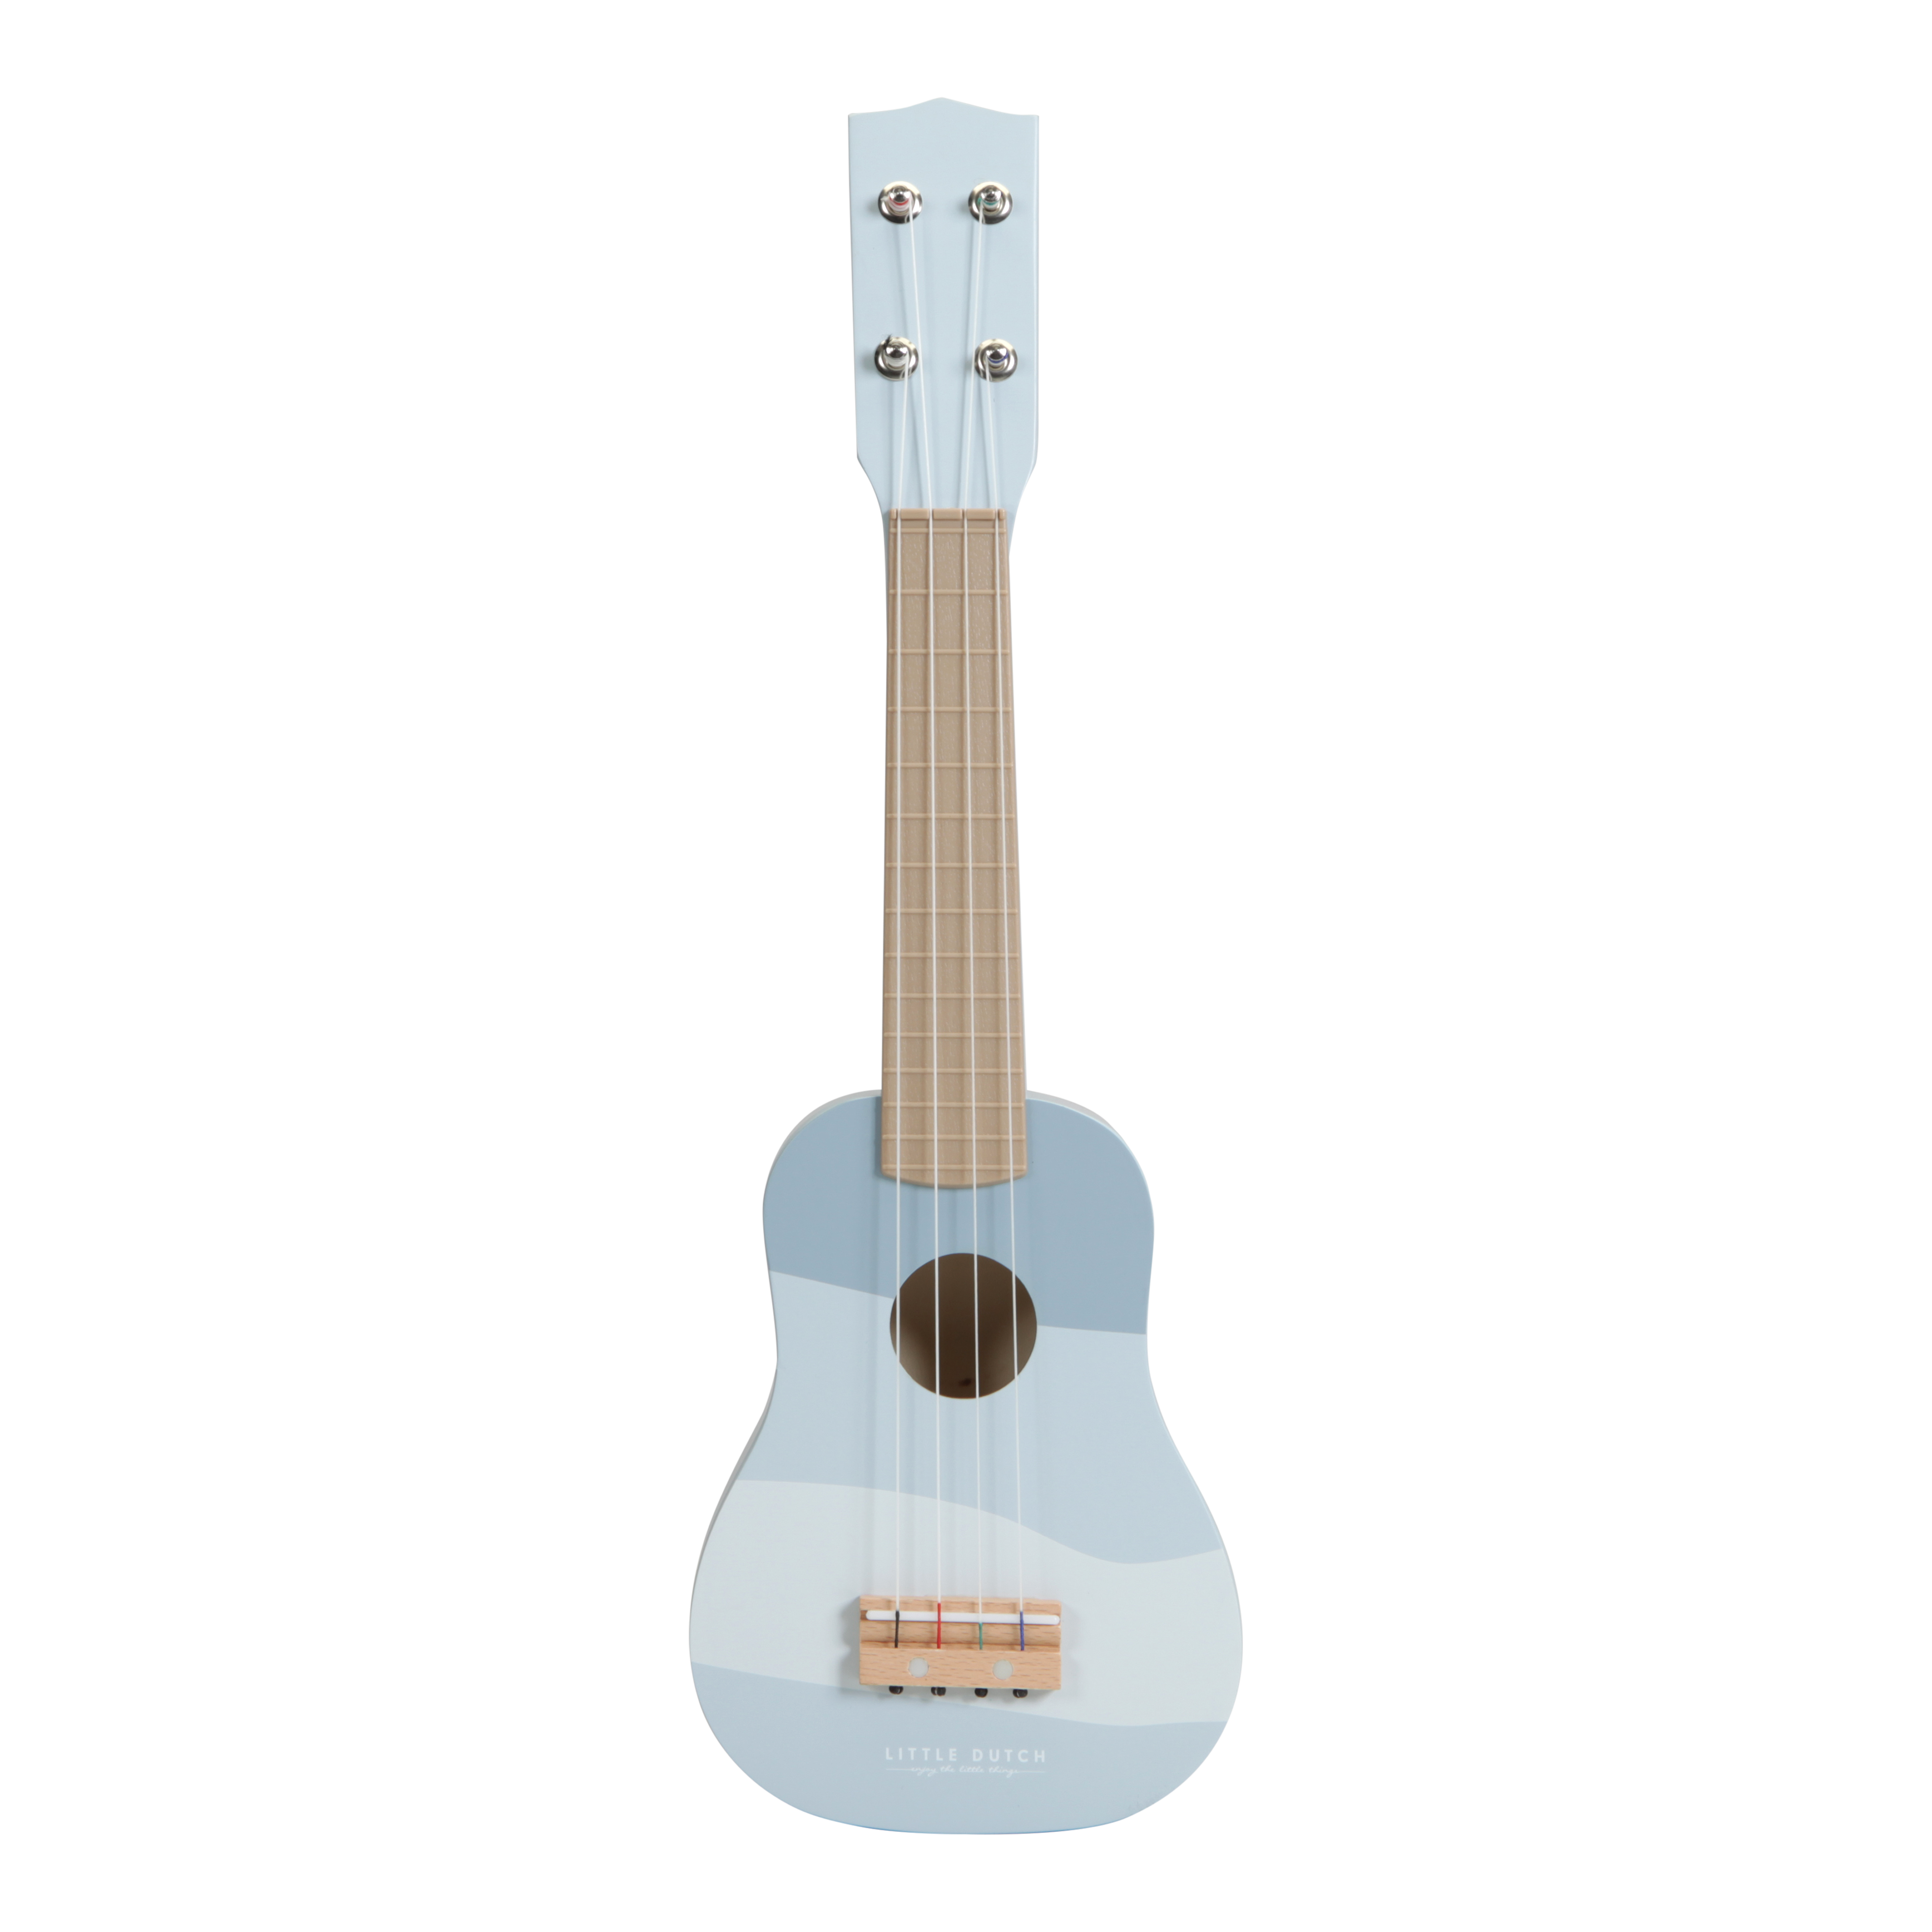 Little Dutch New Wooden Guitar -Blue